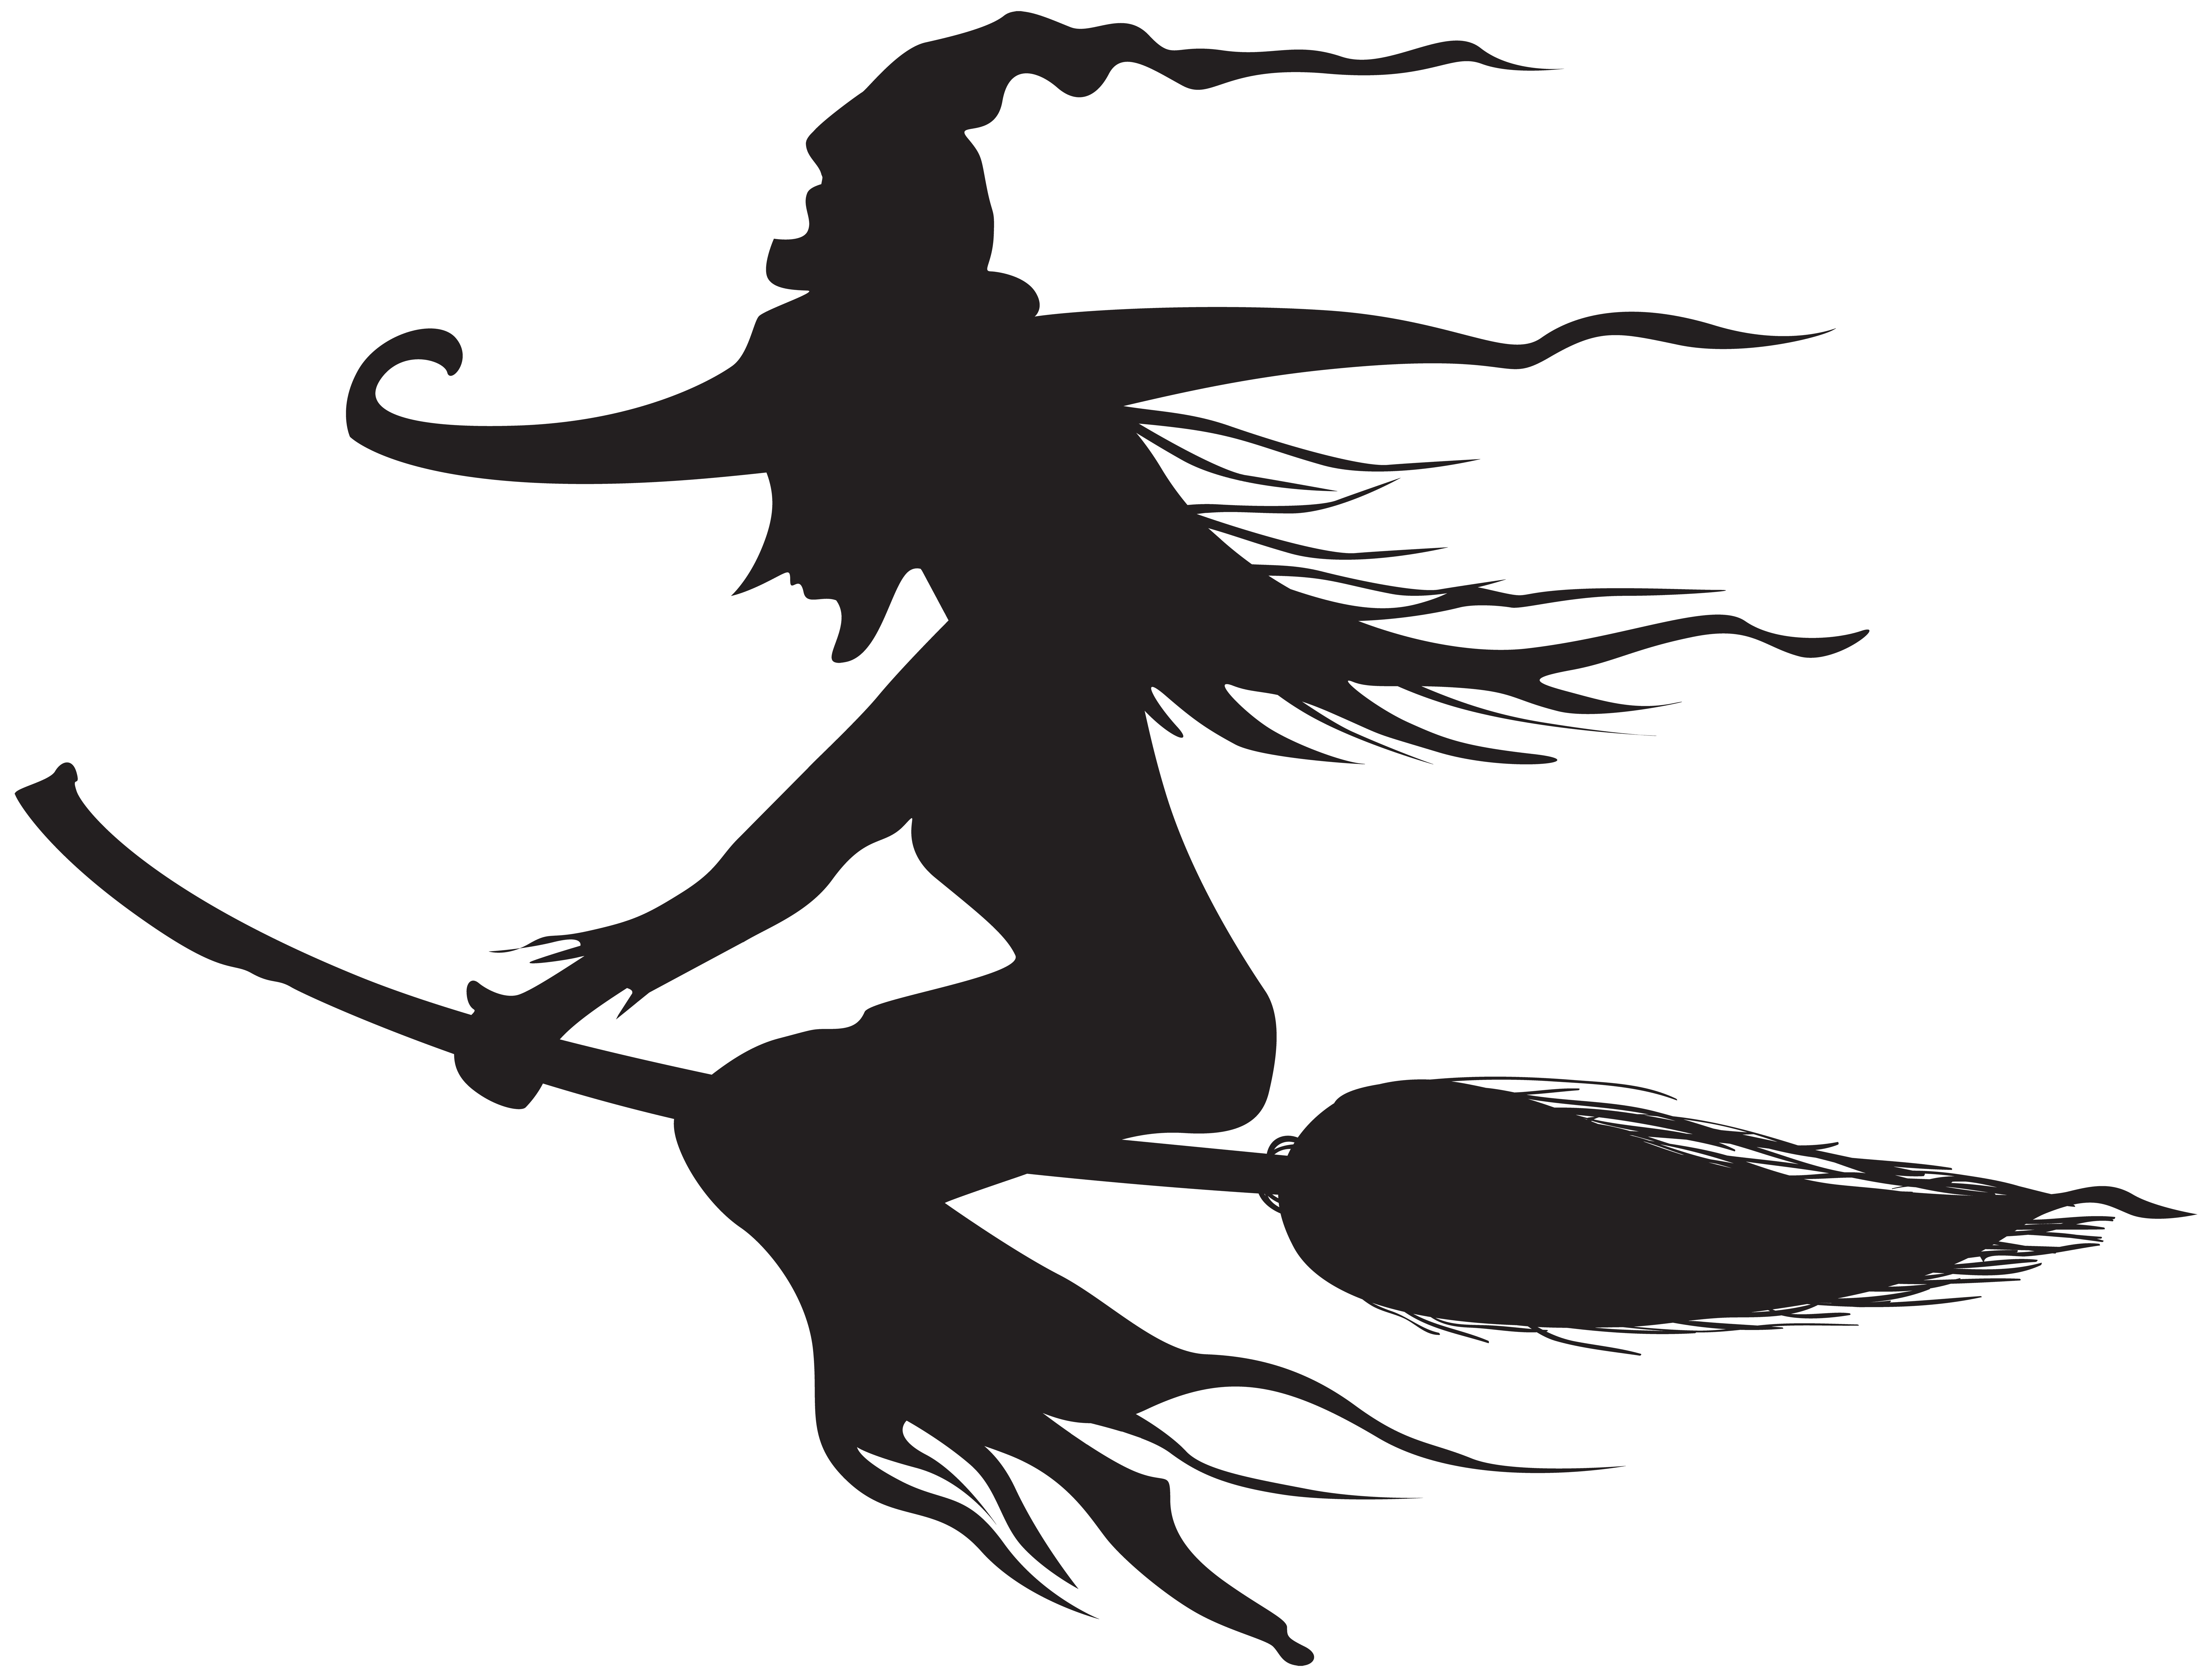 Halloween witch clipart black and white vector freeuse download Halloween Witch Silhouette PNG Clip Art | Gallery Yopriceville ... vector freeuse download